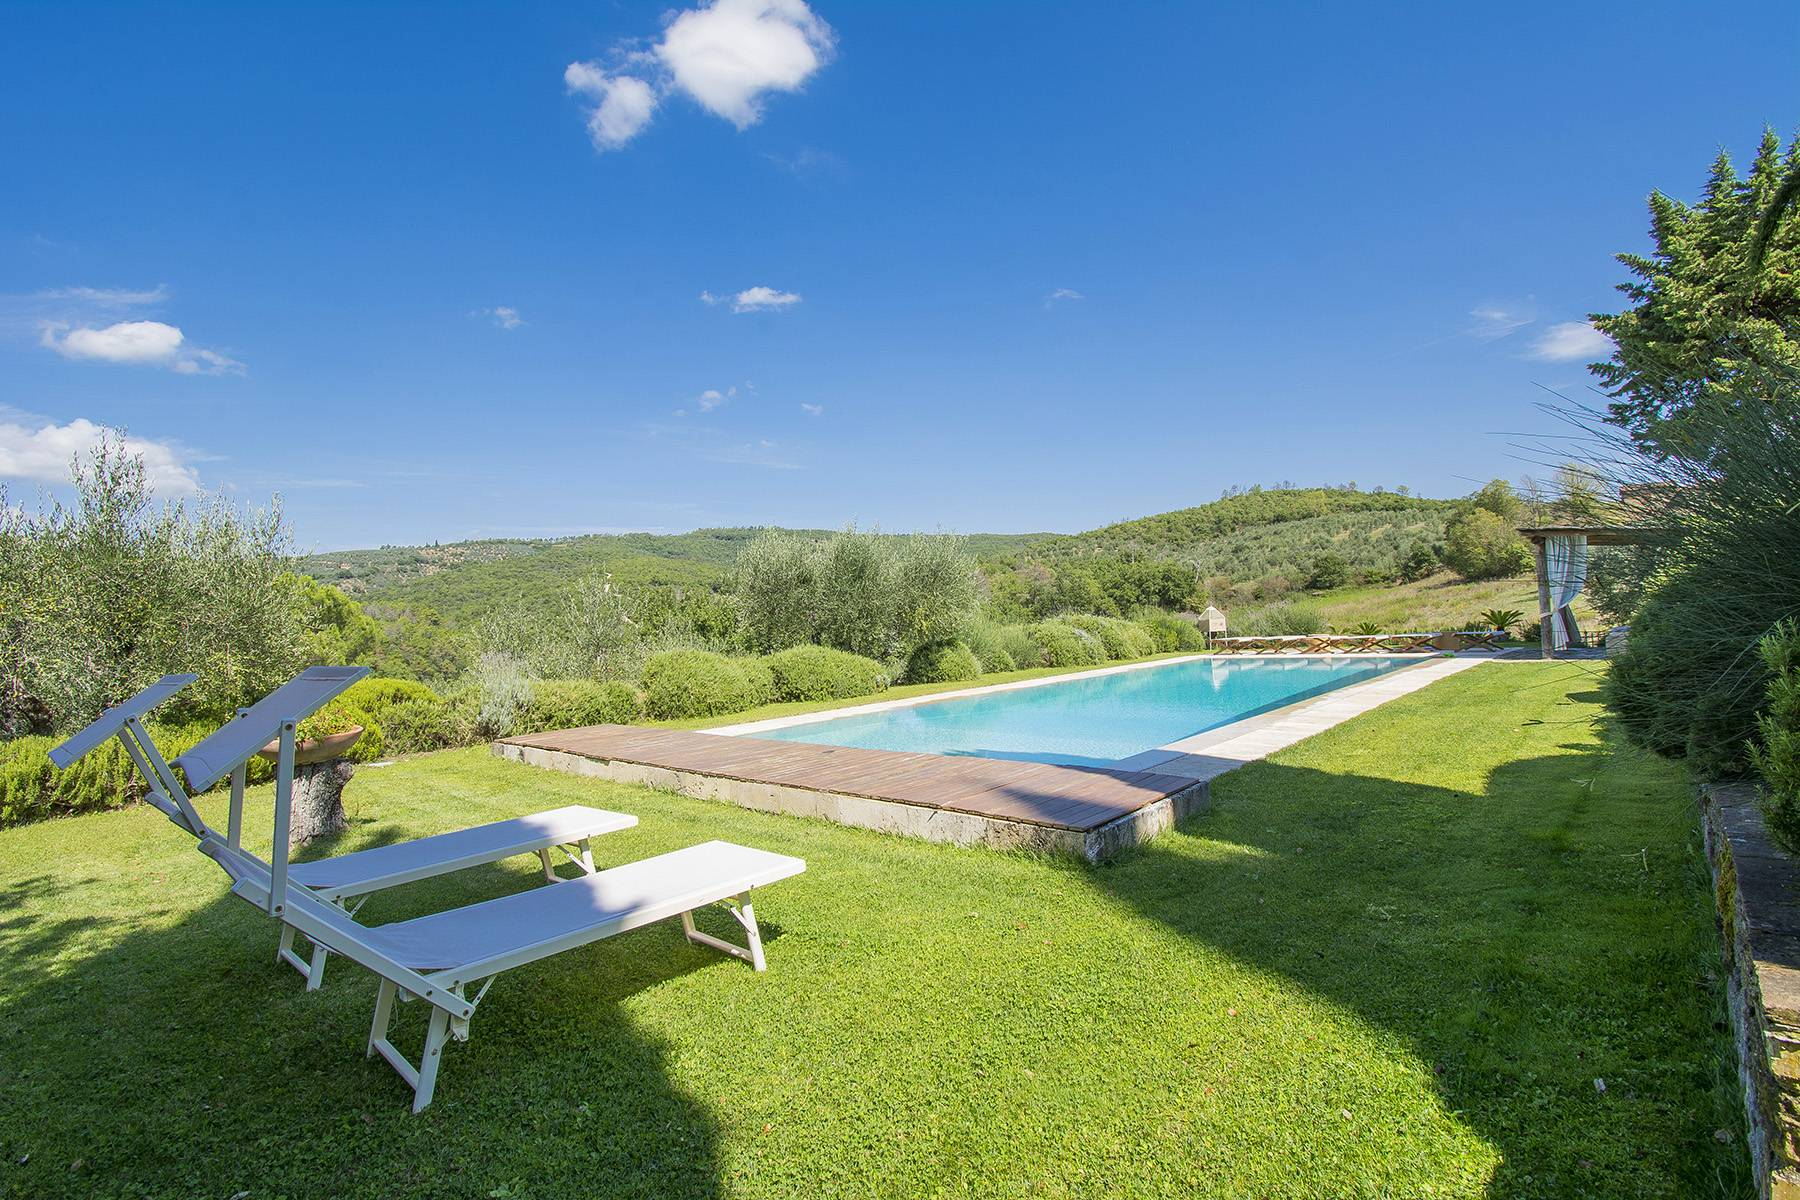 House in the Tuscan Hills for Sale - 27